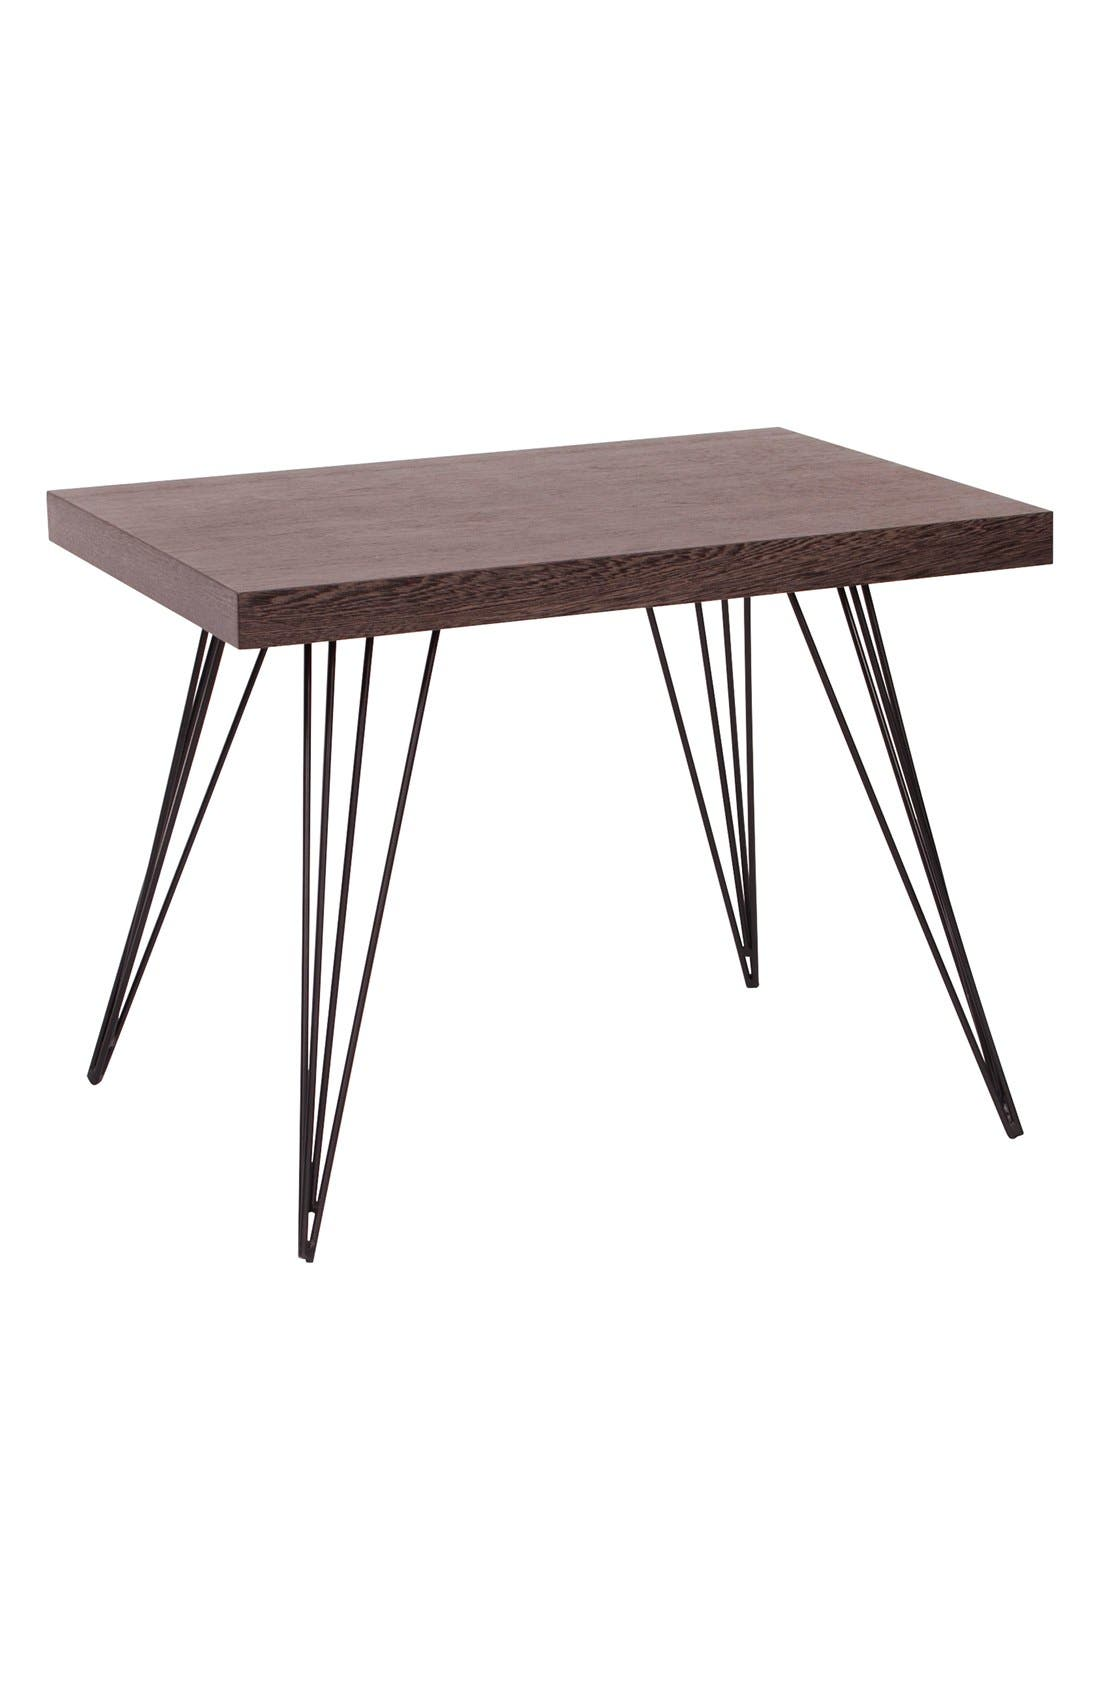 Main Image - Howard Elliott Collection Black Ash & Wire Side Table